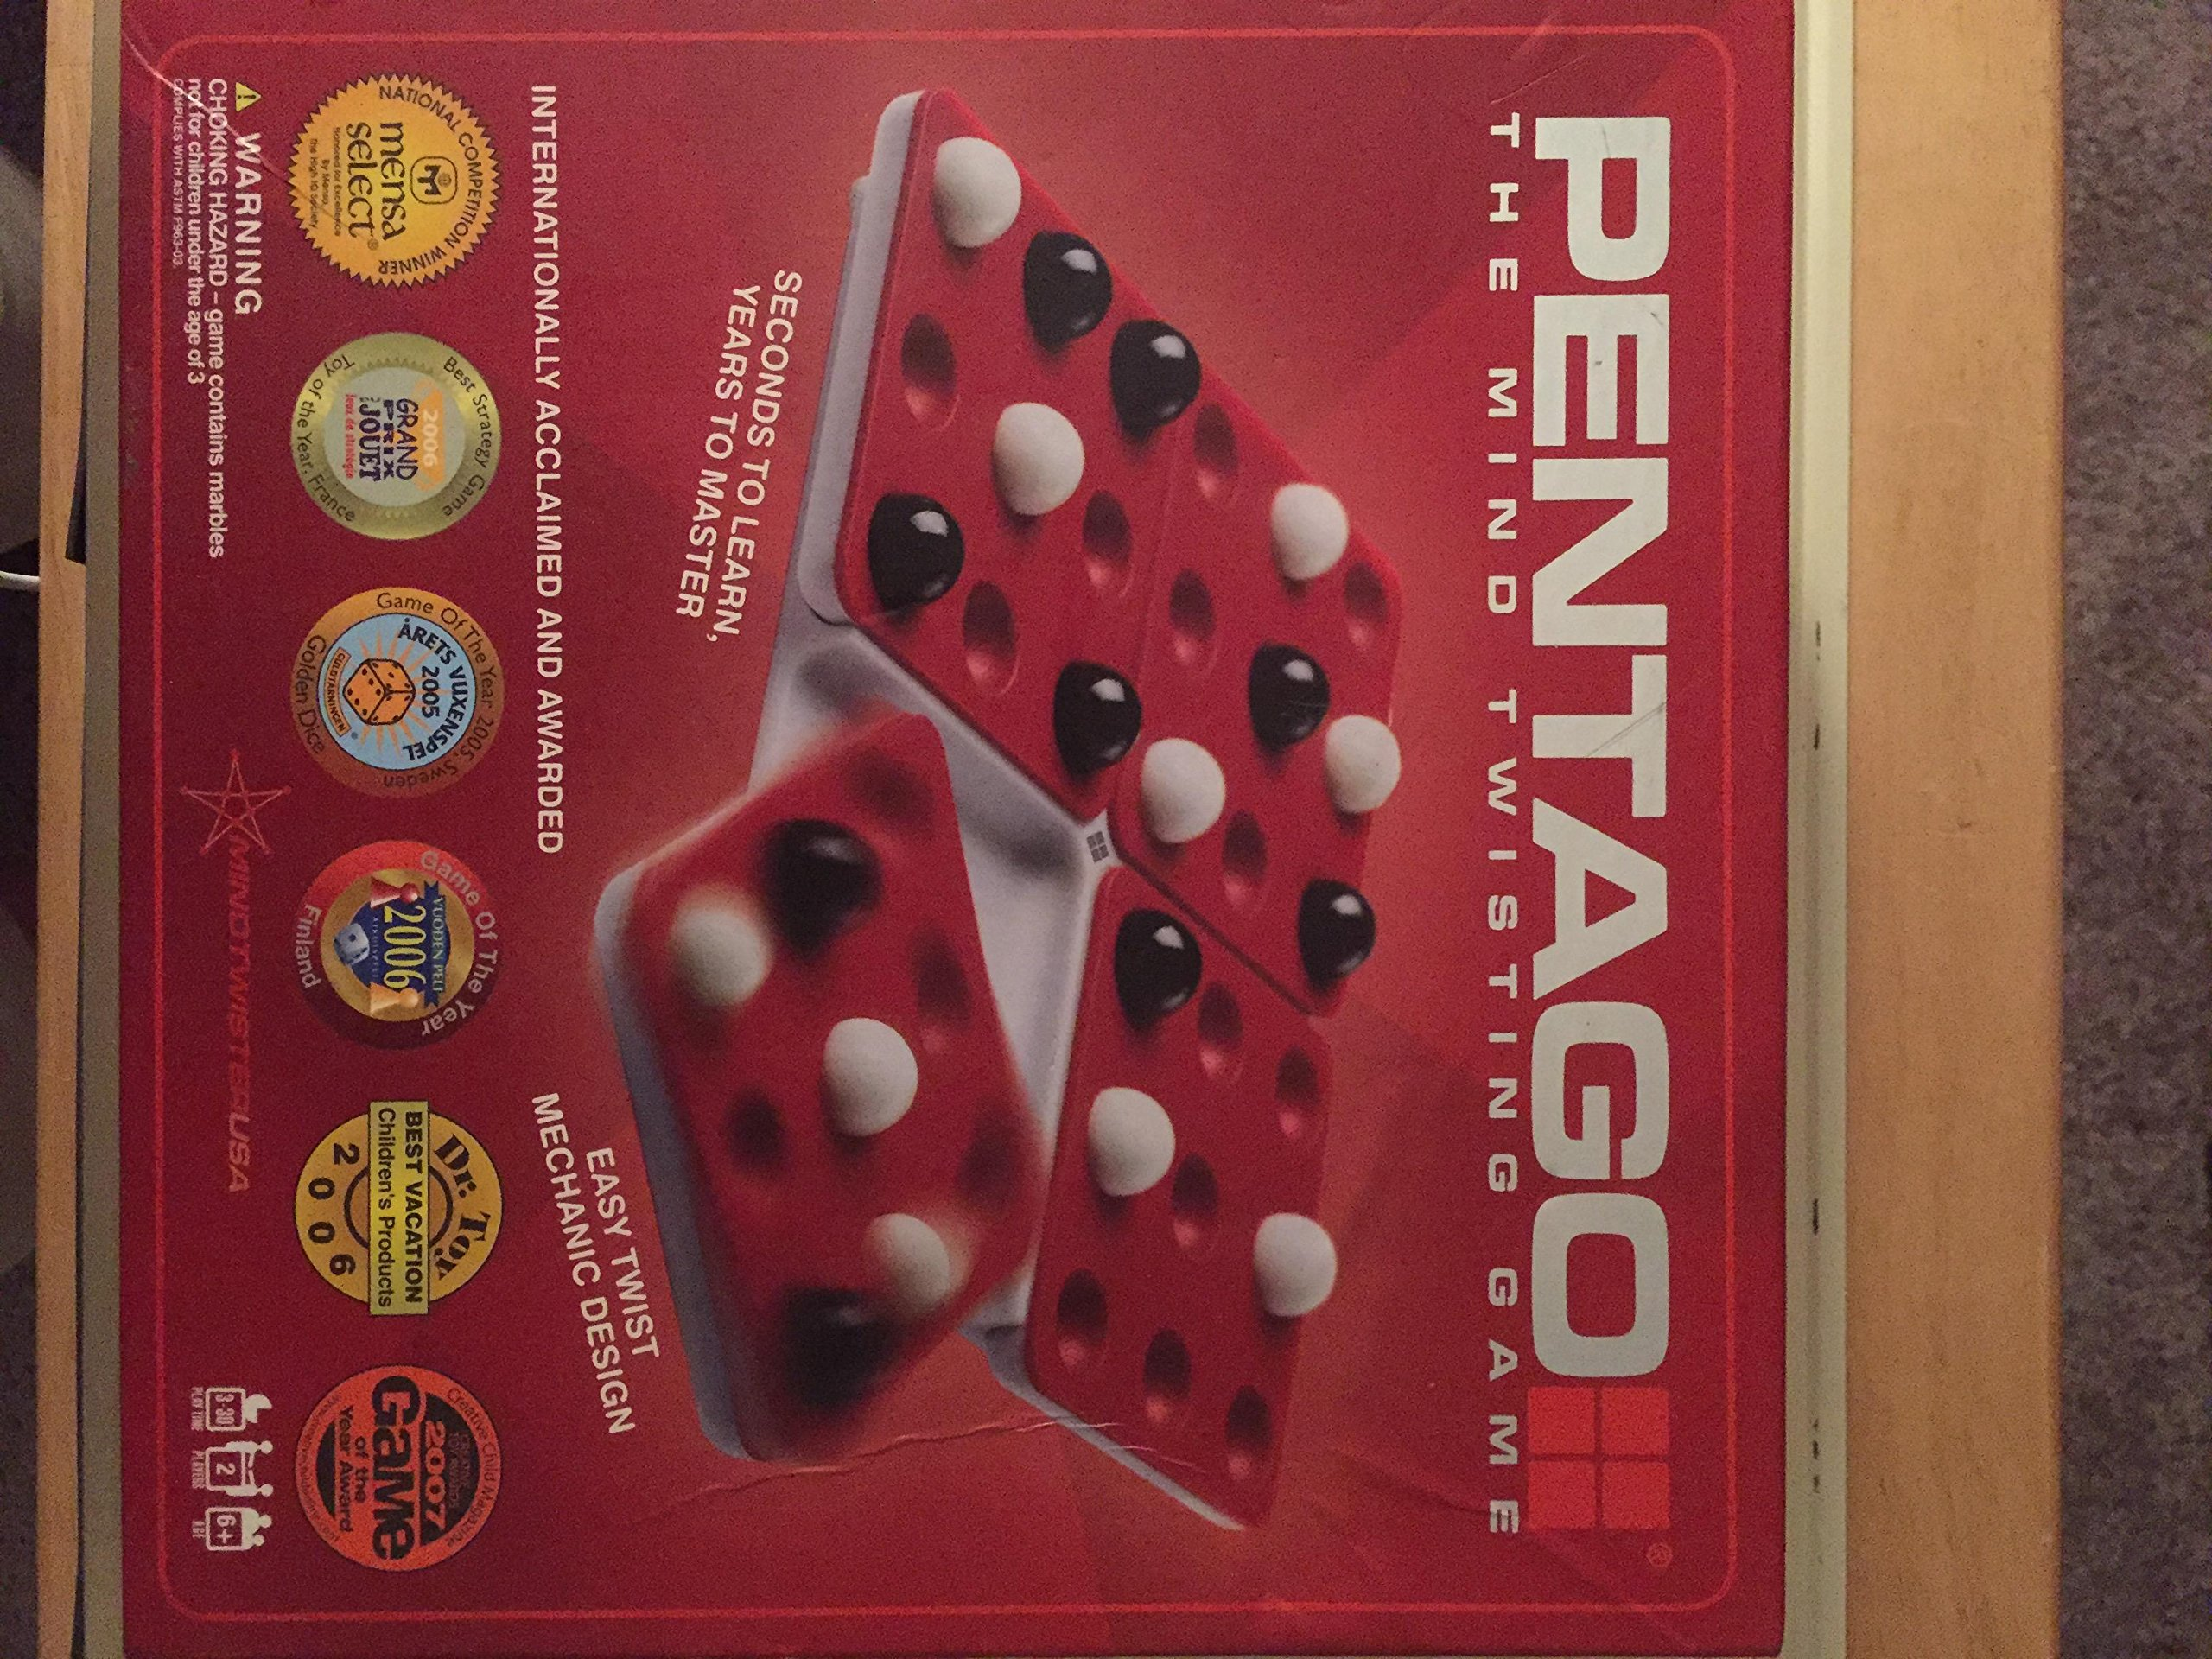 Mindtwister USA Pentago Strategy Game, Travel Edition by Mindtwister USA (Image #1)